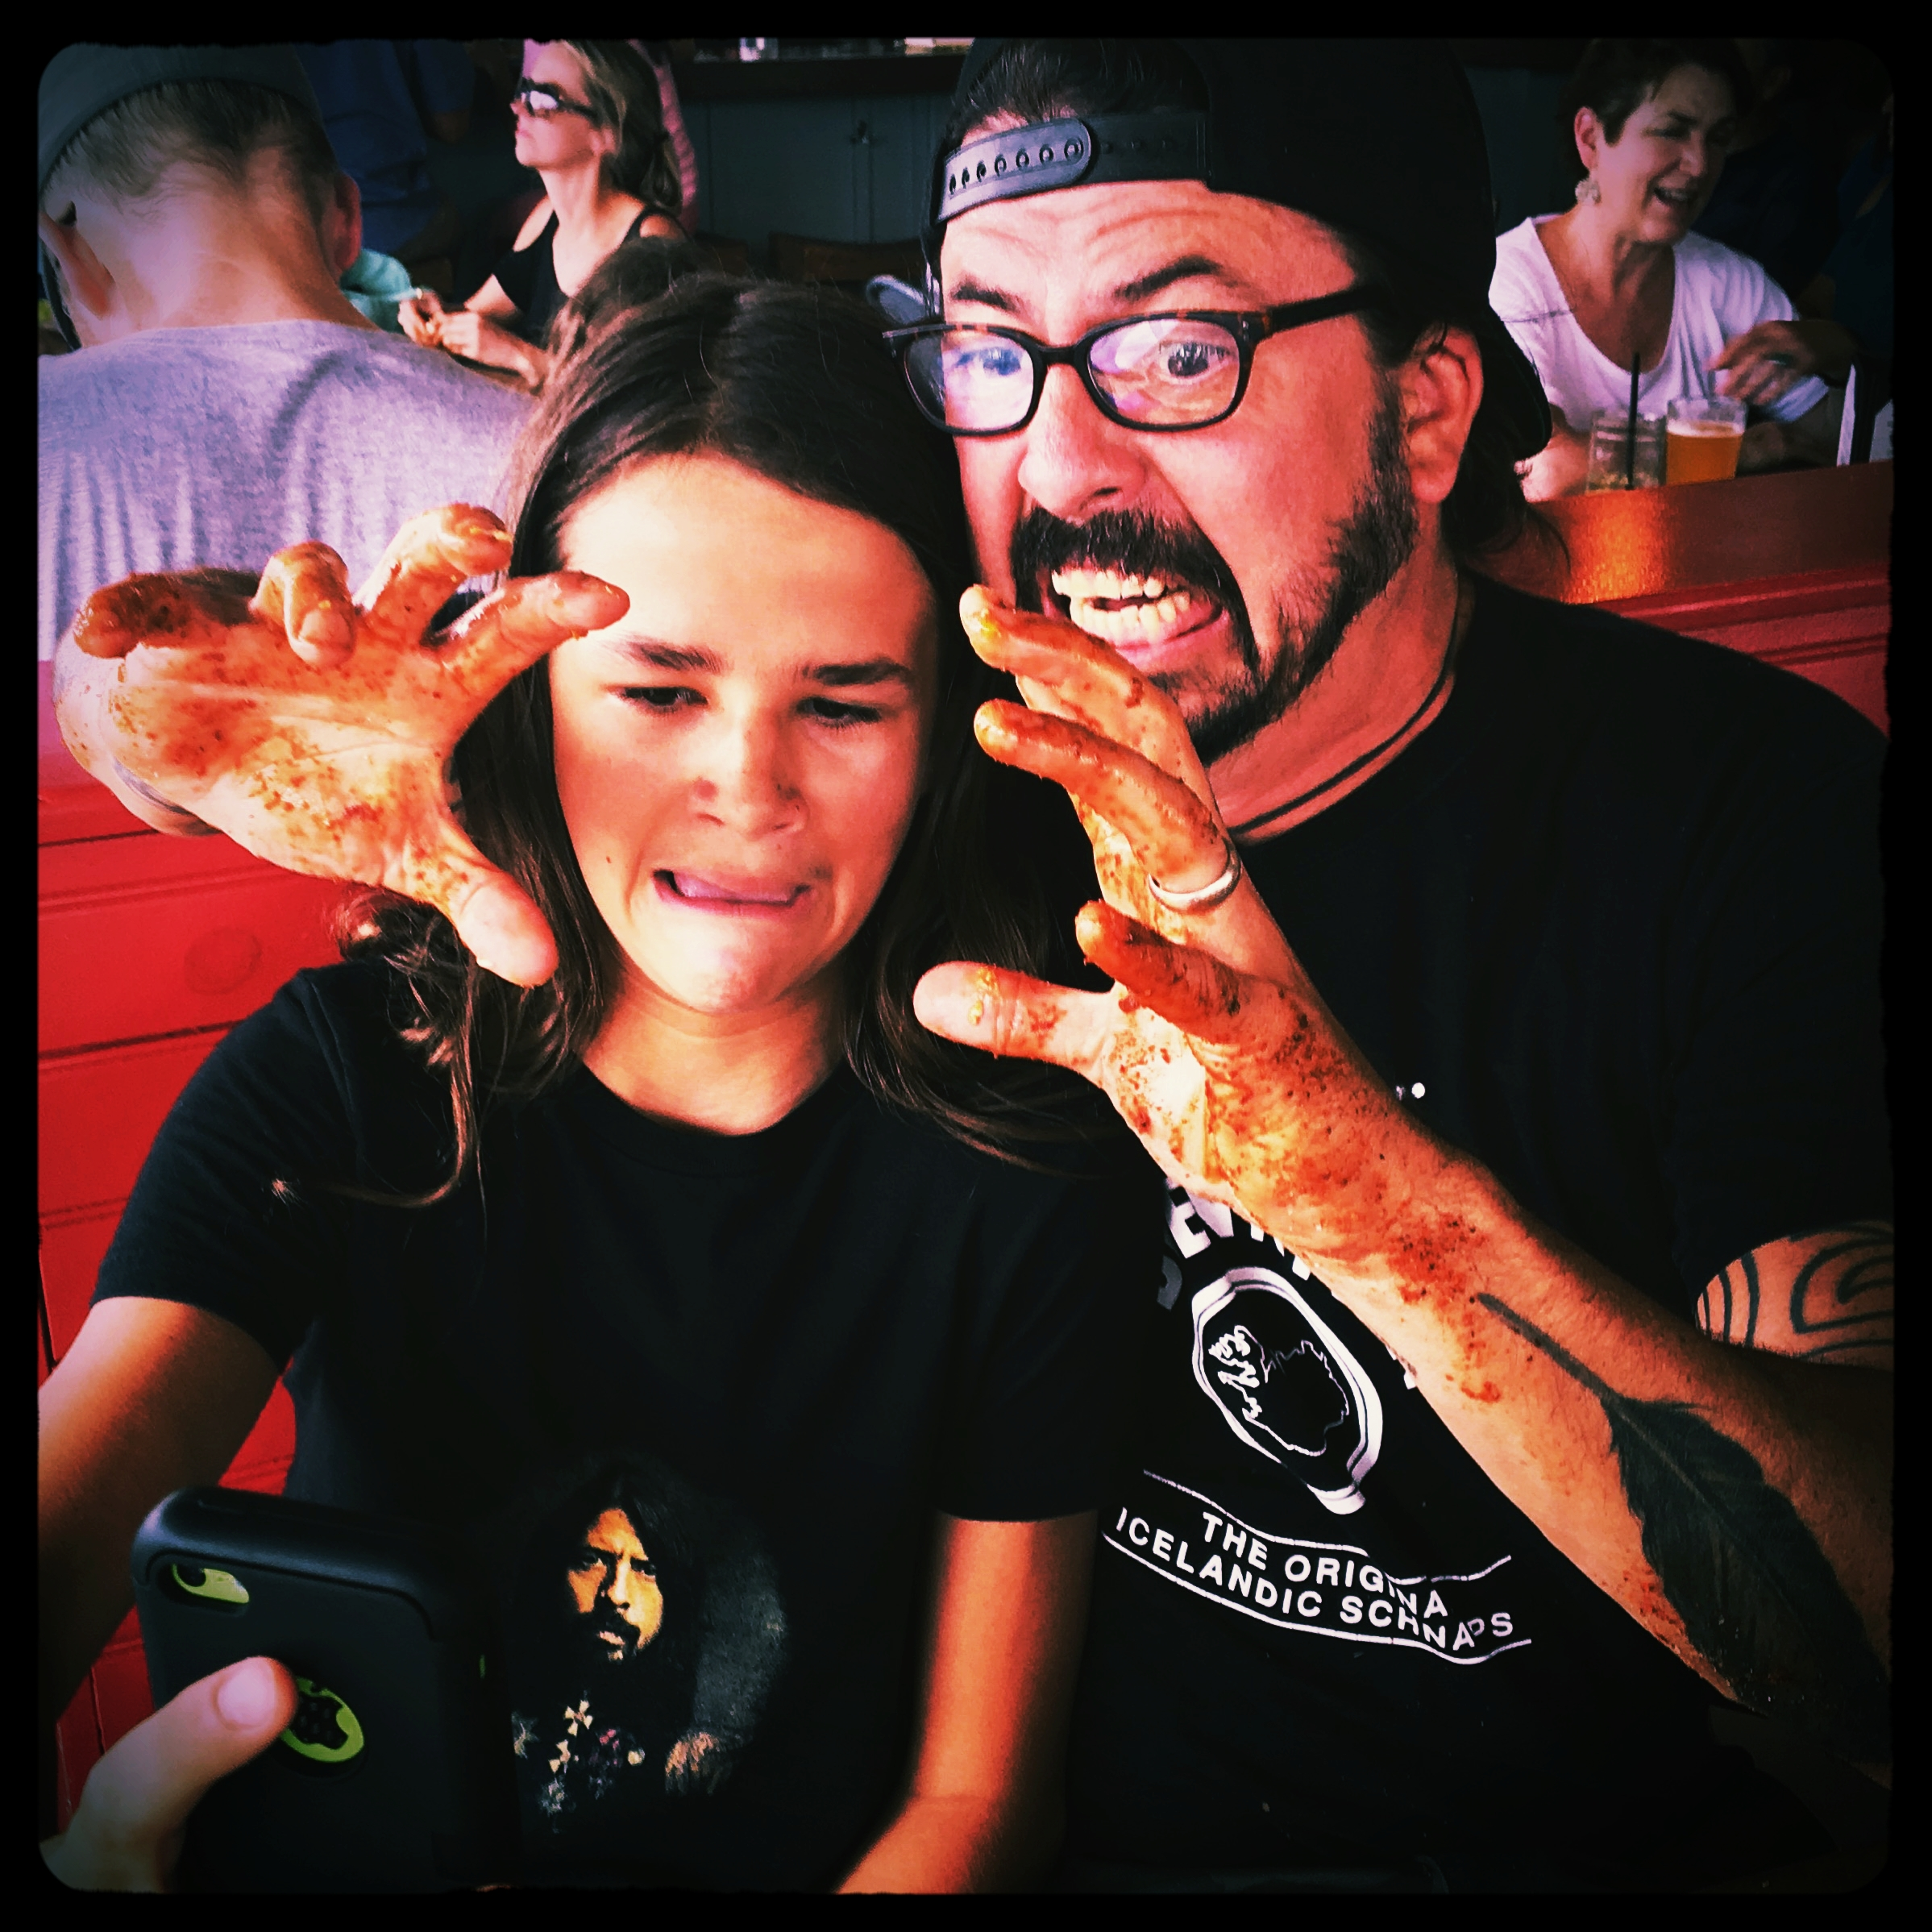 Jackson and Dave Grohl